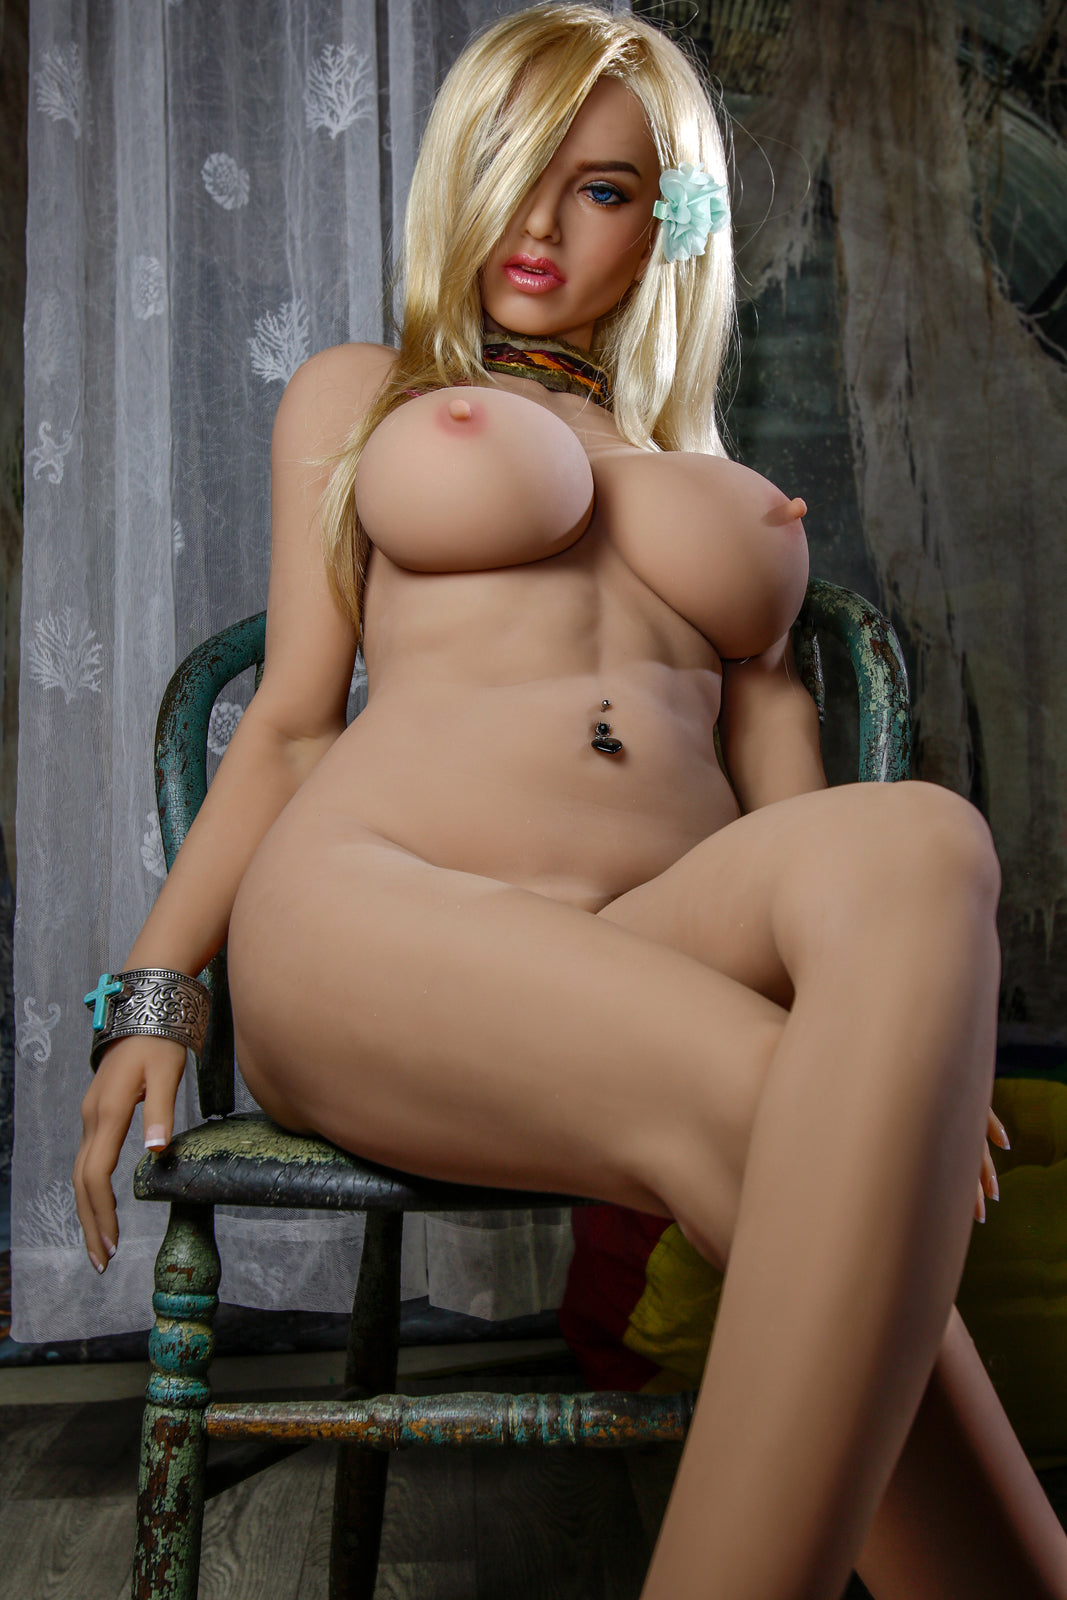 shari 161cm blonde big boobs athletic tpe sex doll(6)